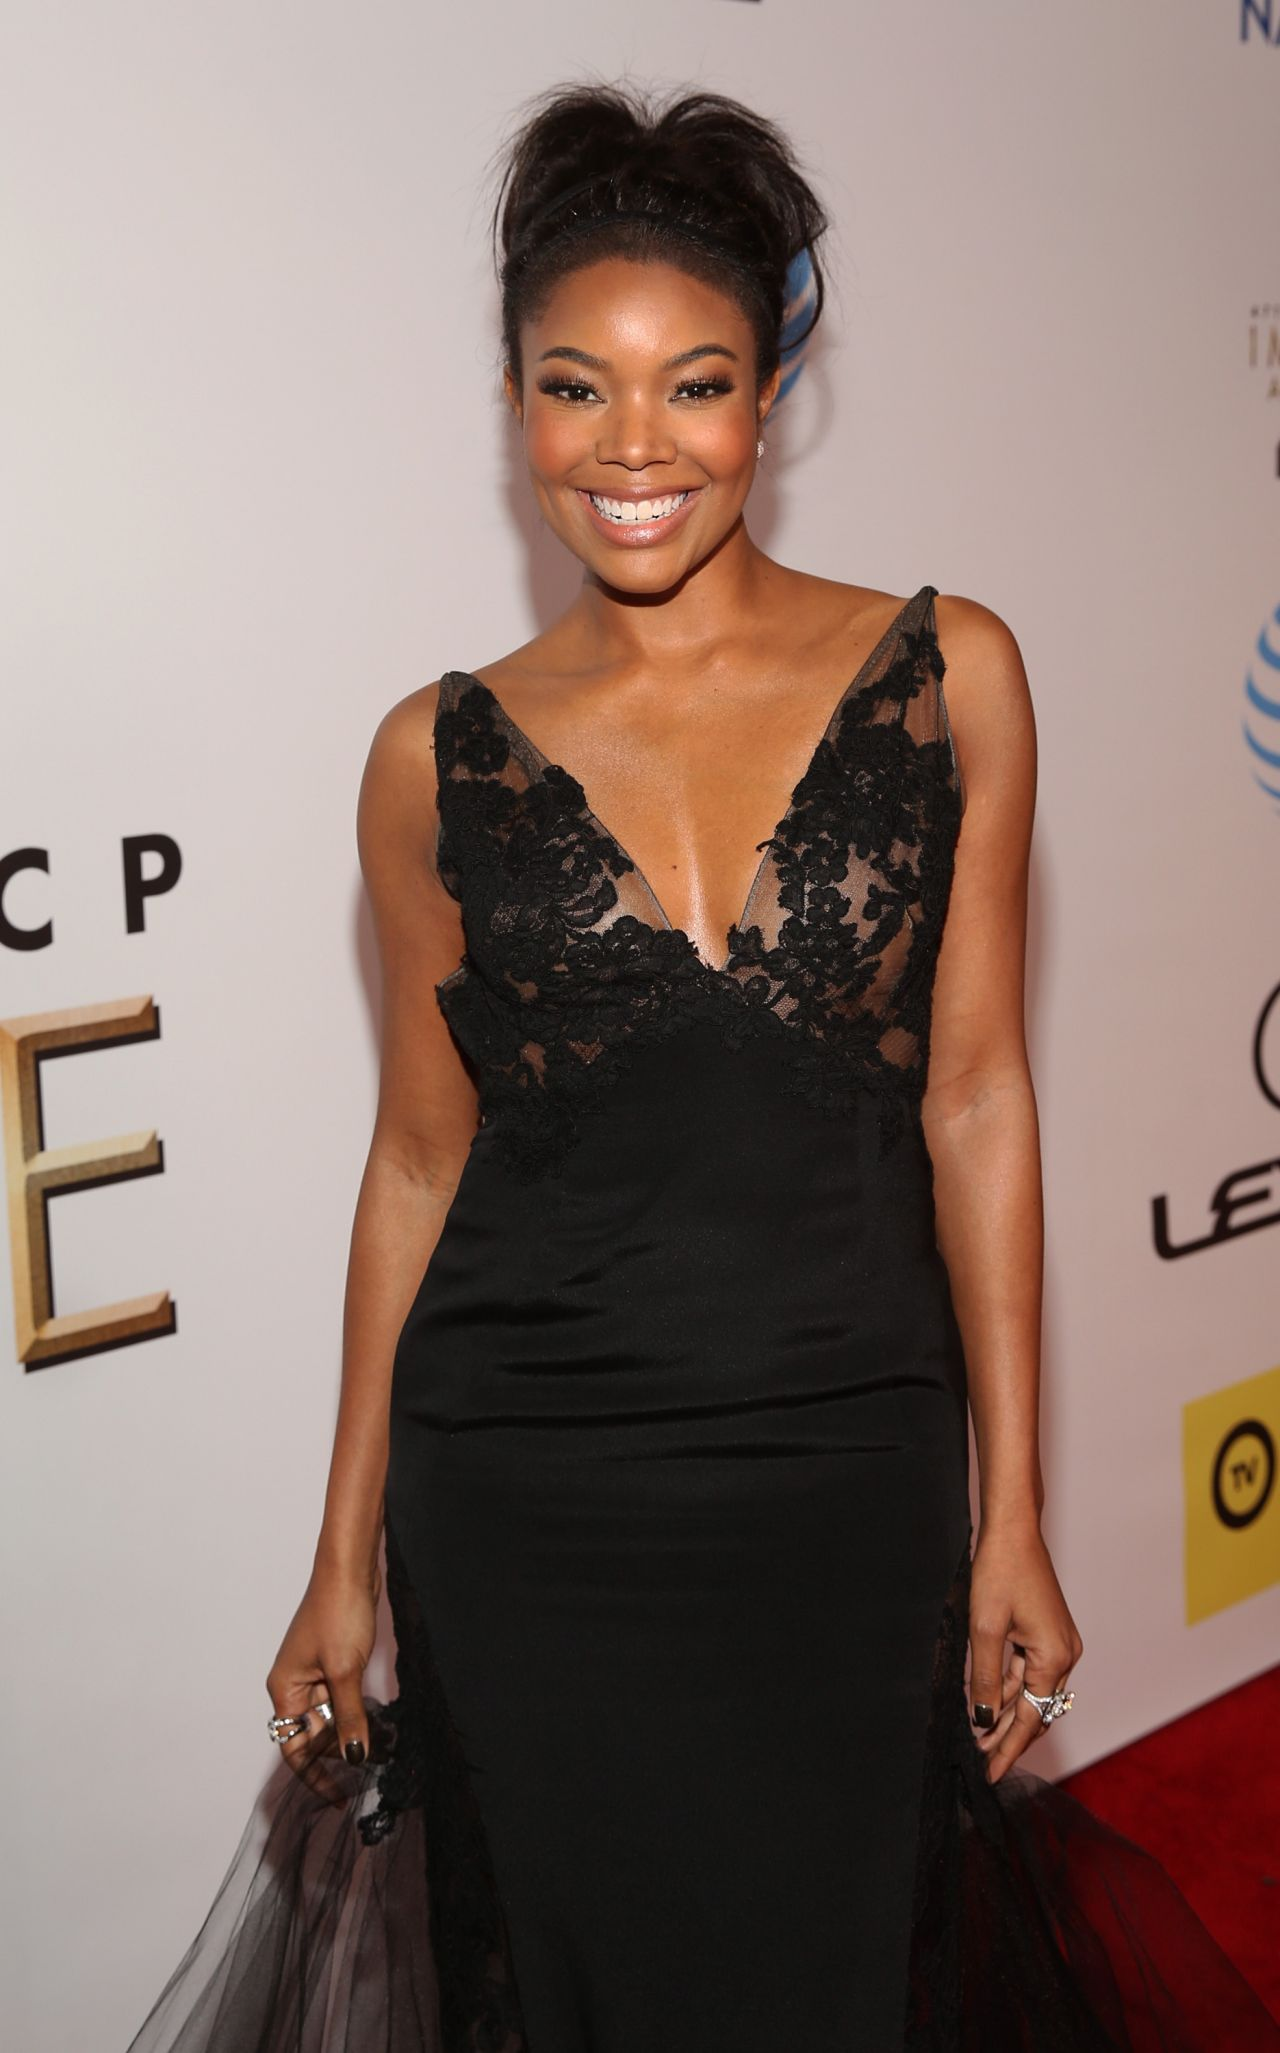 gabrielle-union-naacp-image-awards-2016-presented-by-tv-one-in-pasadena-ca-1